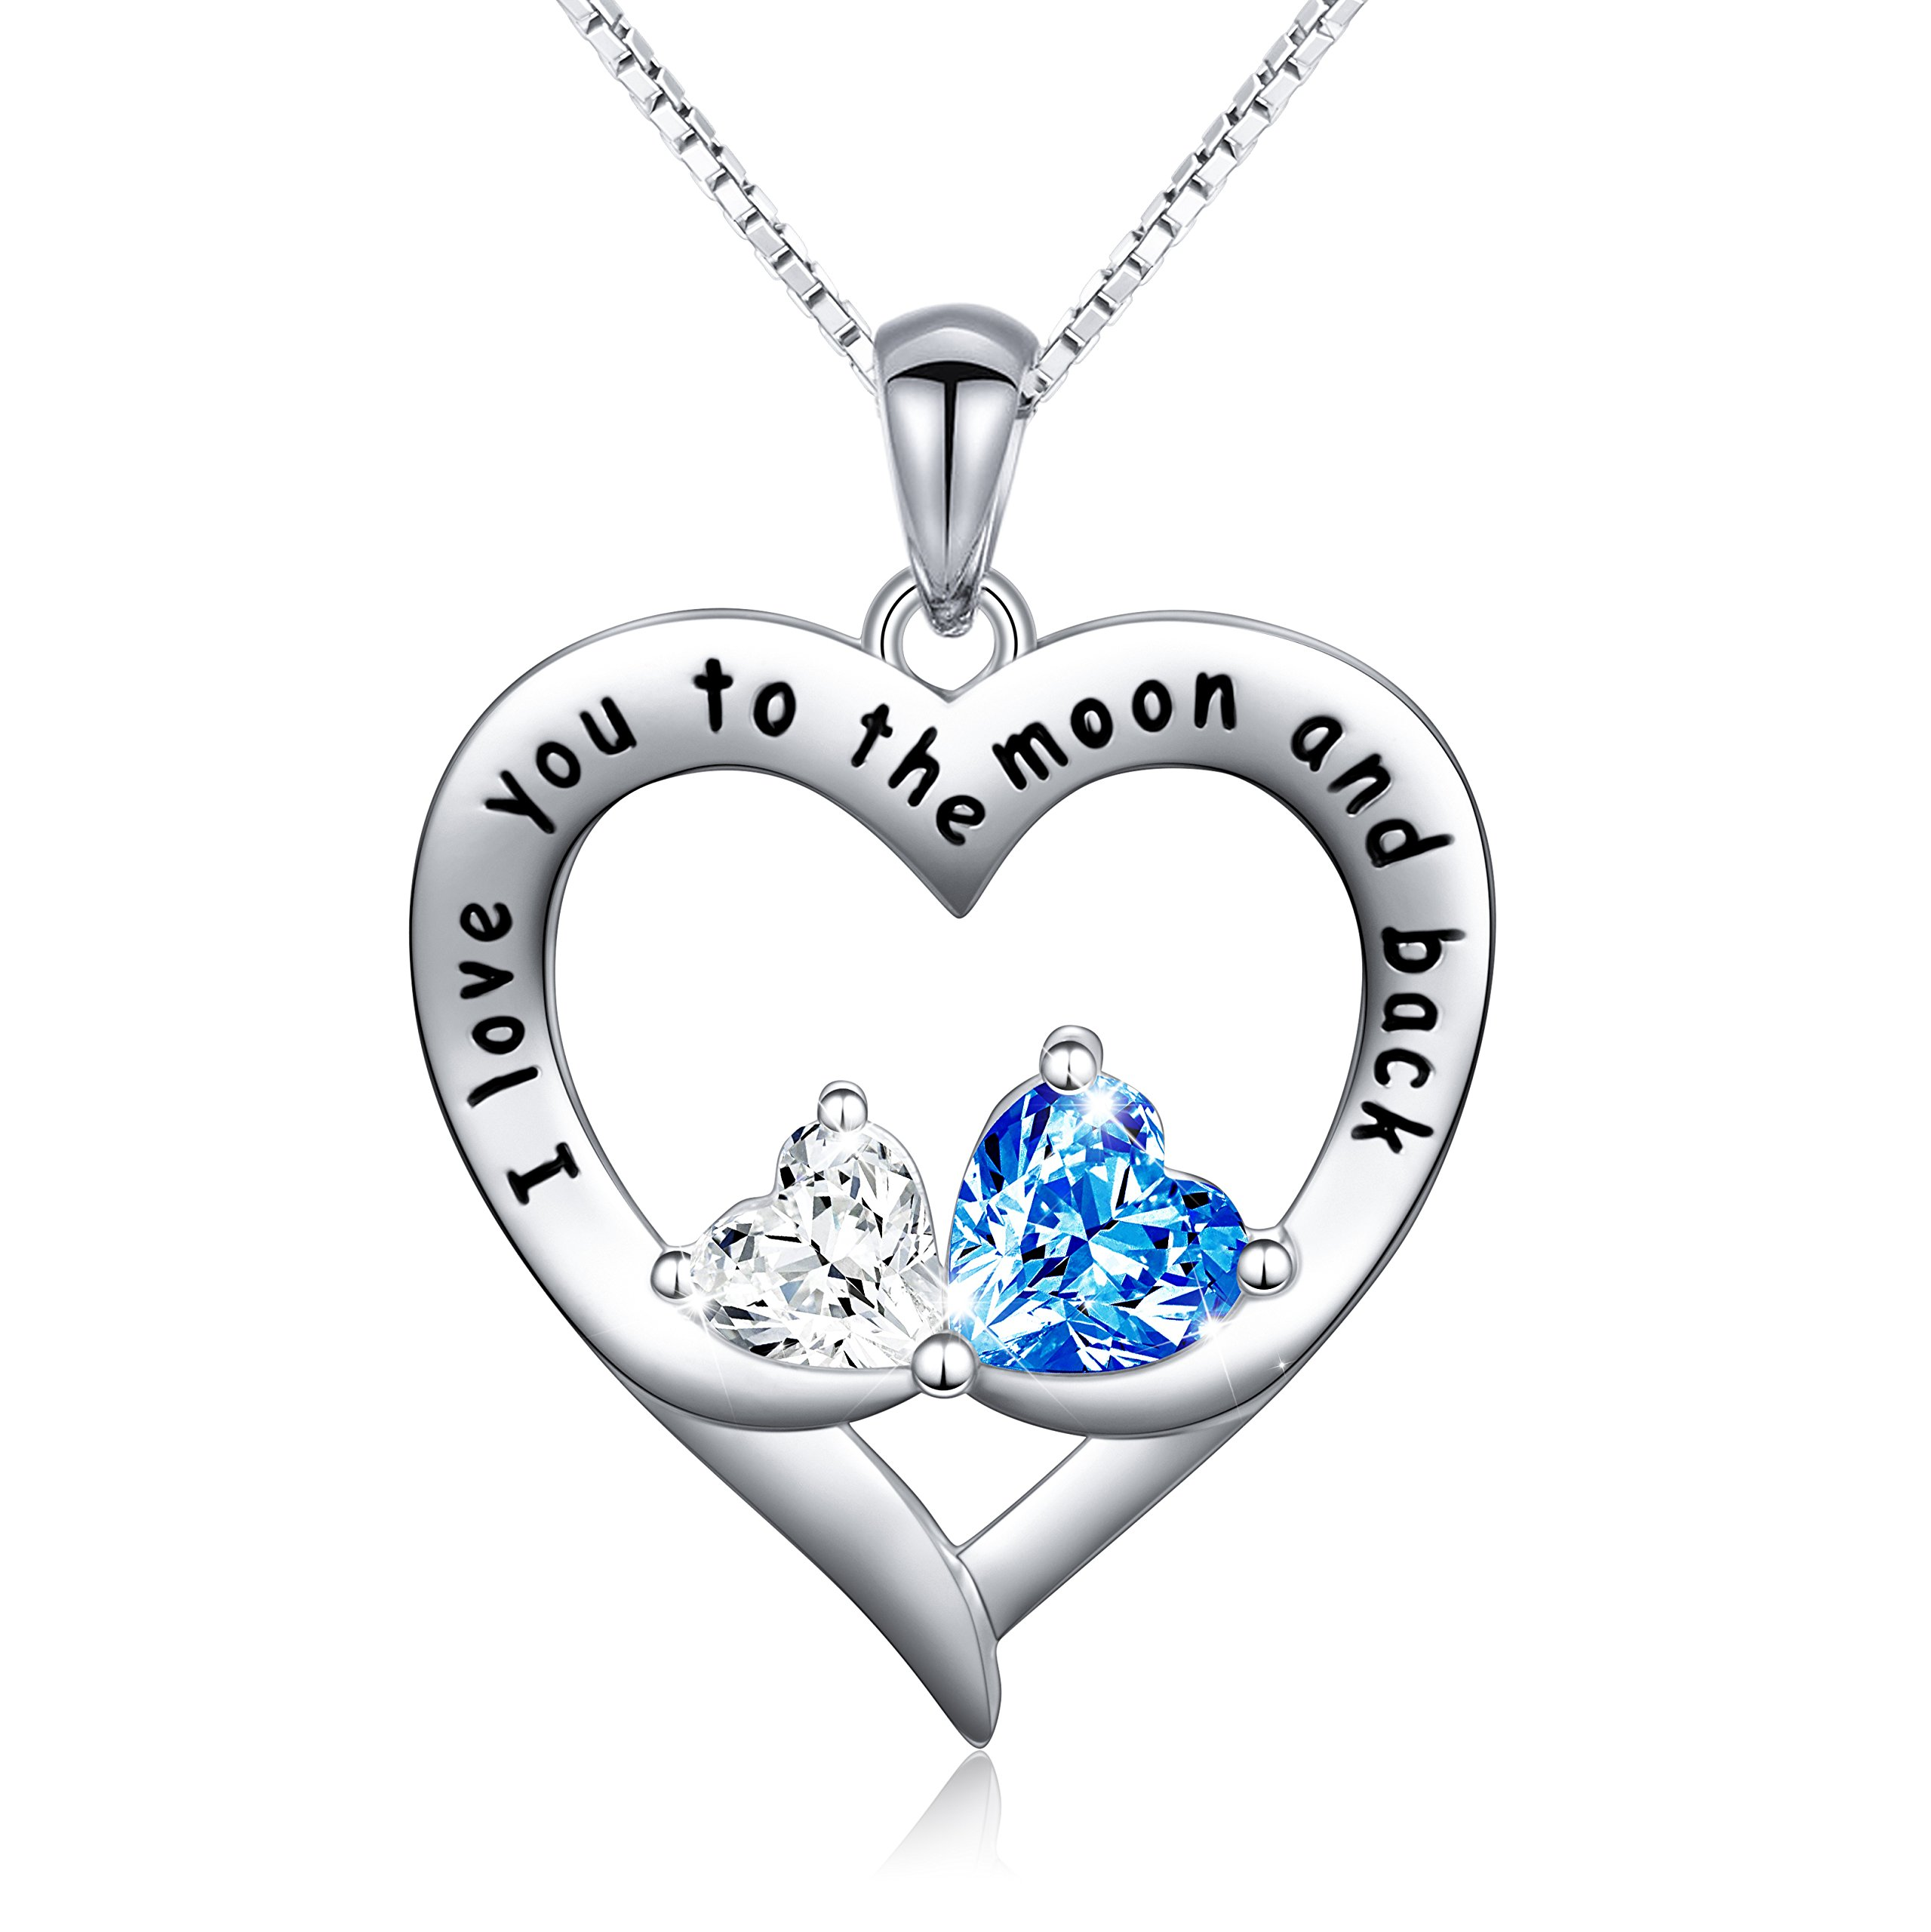 DAOCHONG Sterling Silver I Love You to The Moon and Back Double Love Heart Necklace Gift for Her, Box Chain 18''